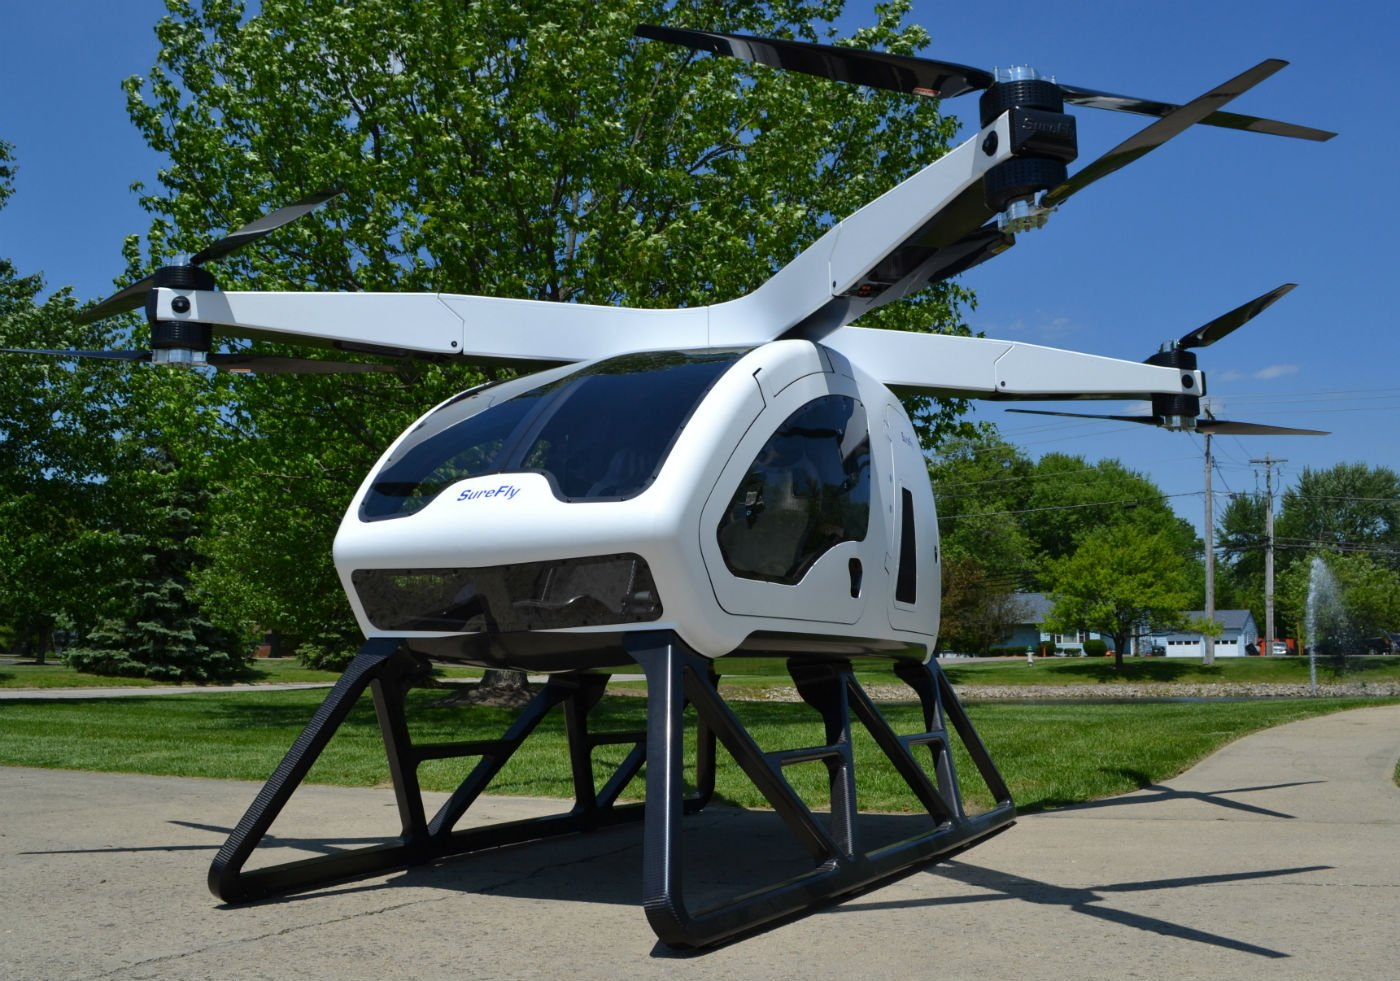 """The SureFly features a two-seat cabin that more closely resembles an automobile chassis than a helicopter airframe, with lift provided by eight single-blade propellers  one above and one below each of four foldable arms that reach out in an """"X"""" from above the center of the cabin. Underneath the cabin are two simple skids. Workhorse Photo"""